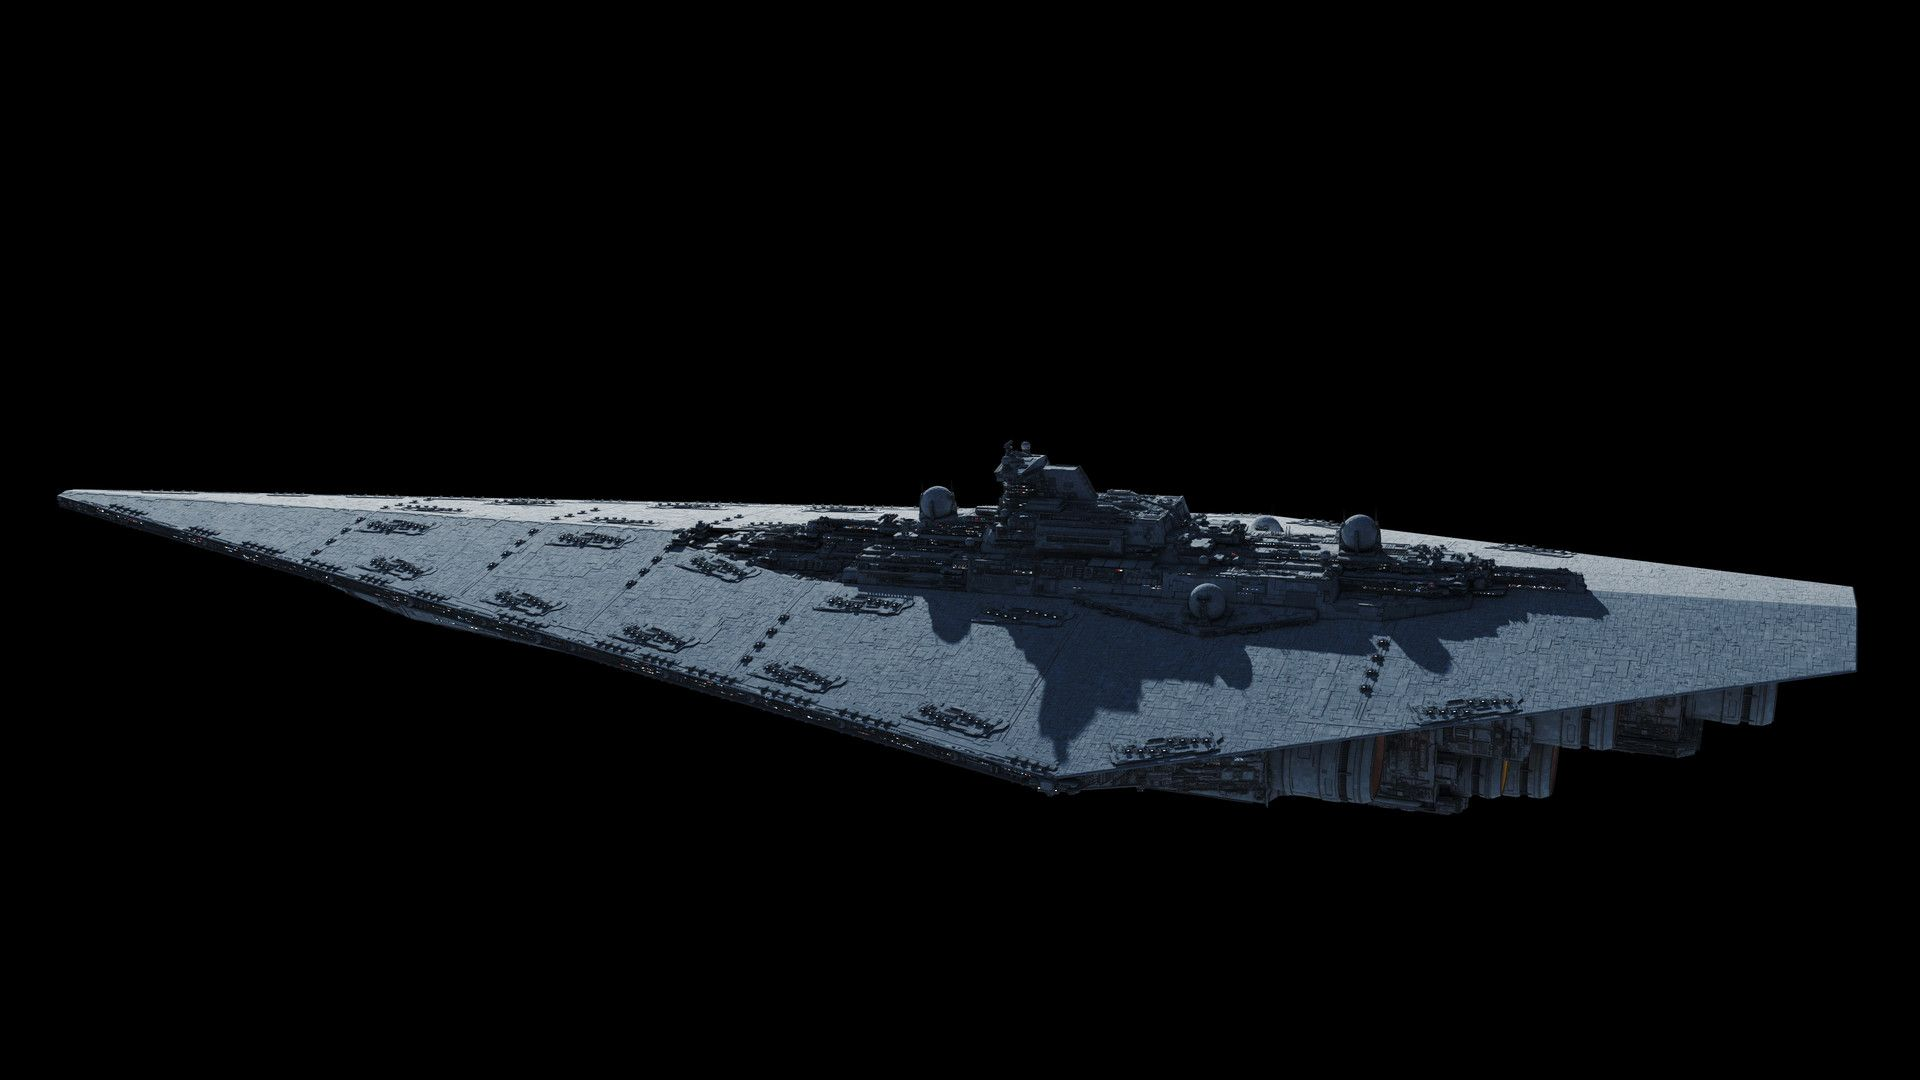 Artstation Legator Class Star Dreadnought 4k Ansel Hsiao Star Wars Spaceships Star Wars Ships Imperial Star Destroyers